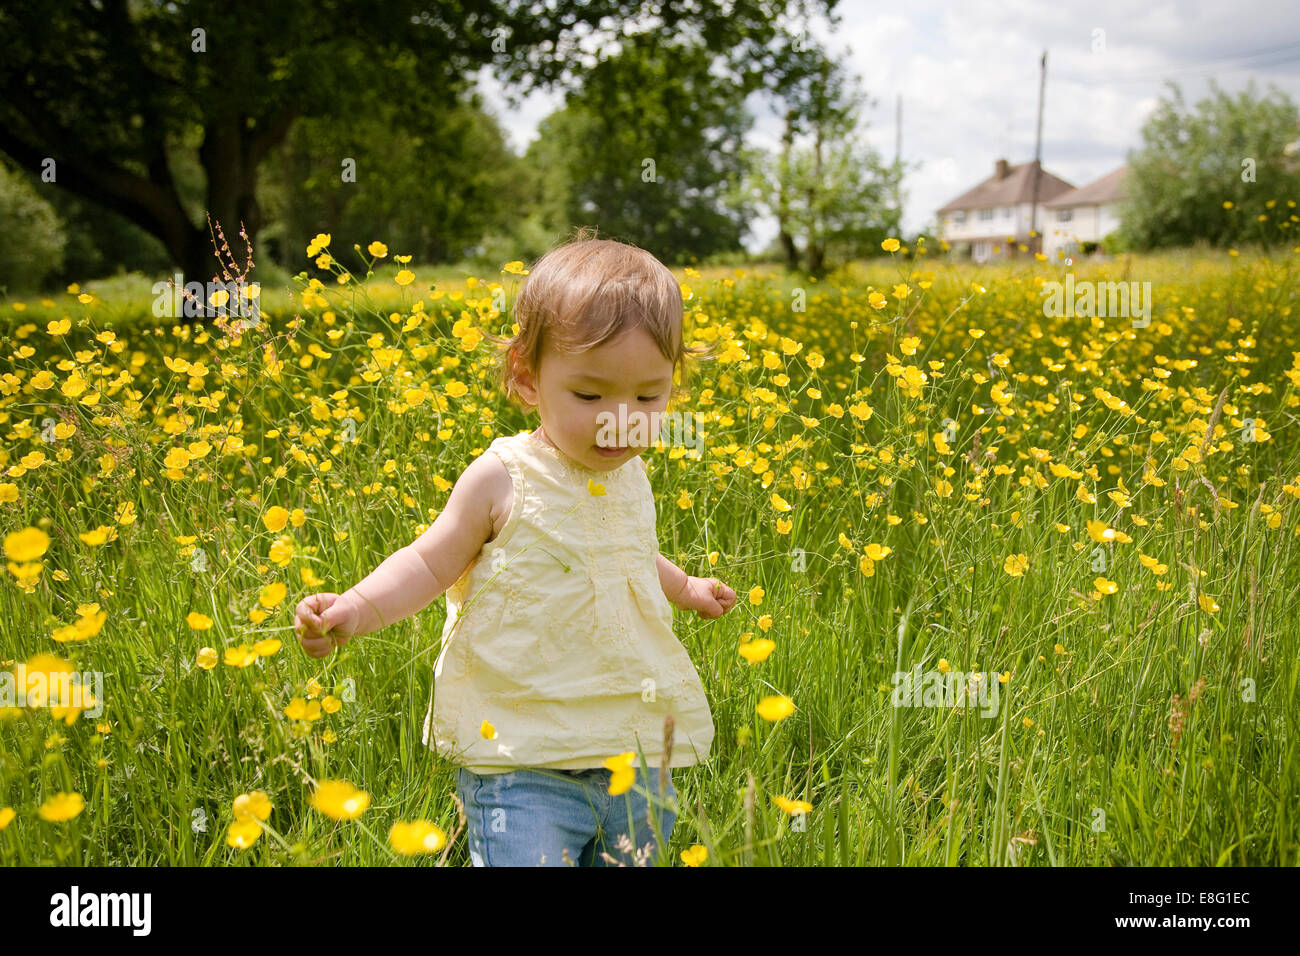 a mixed ethnicity (East Asian / caucasian) female toddler walking alone in an English meadow of buttercups - Stock Image